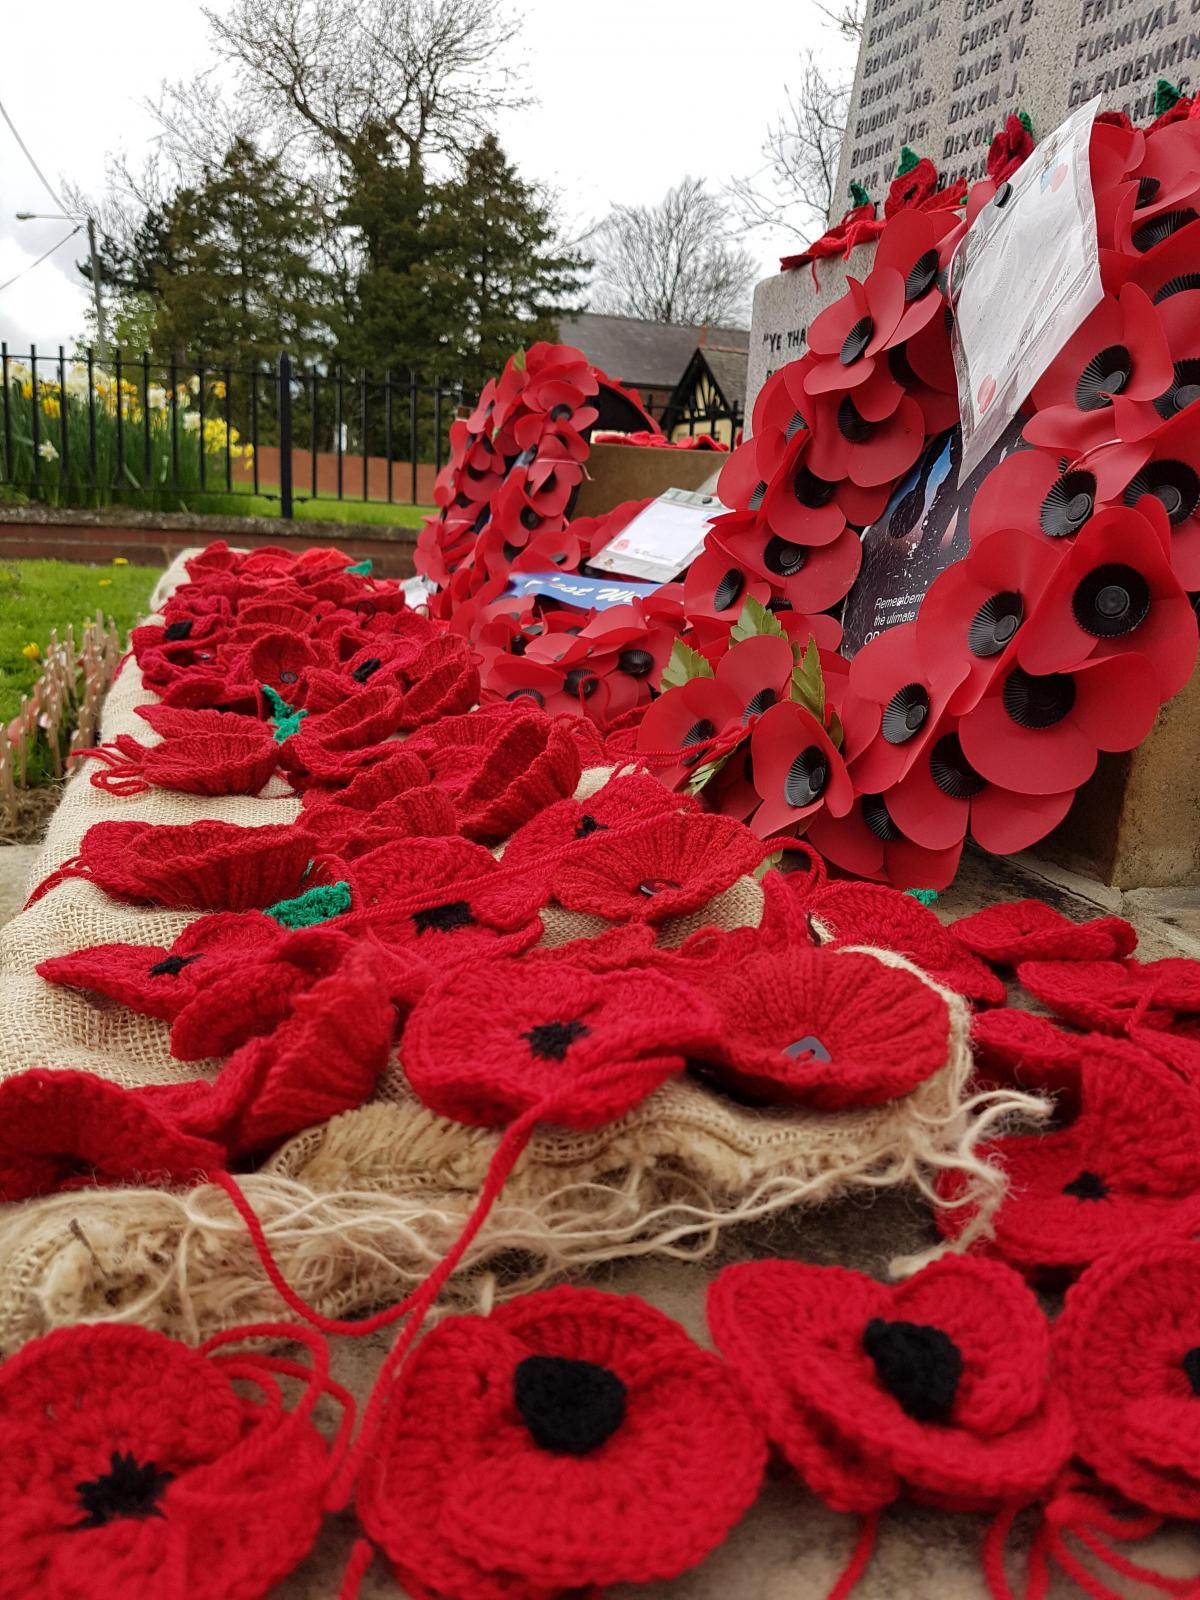 plan to collect a handmade poppy to symbolise the every county